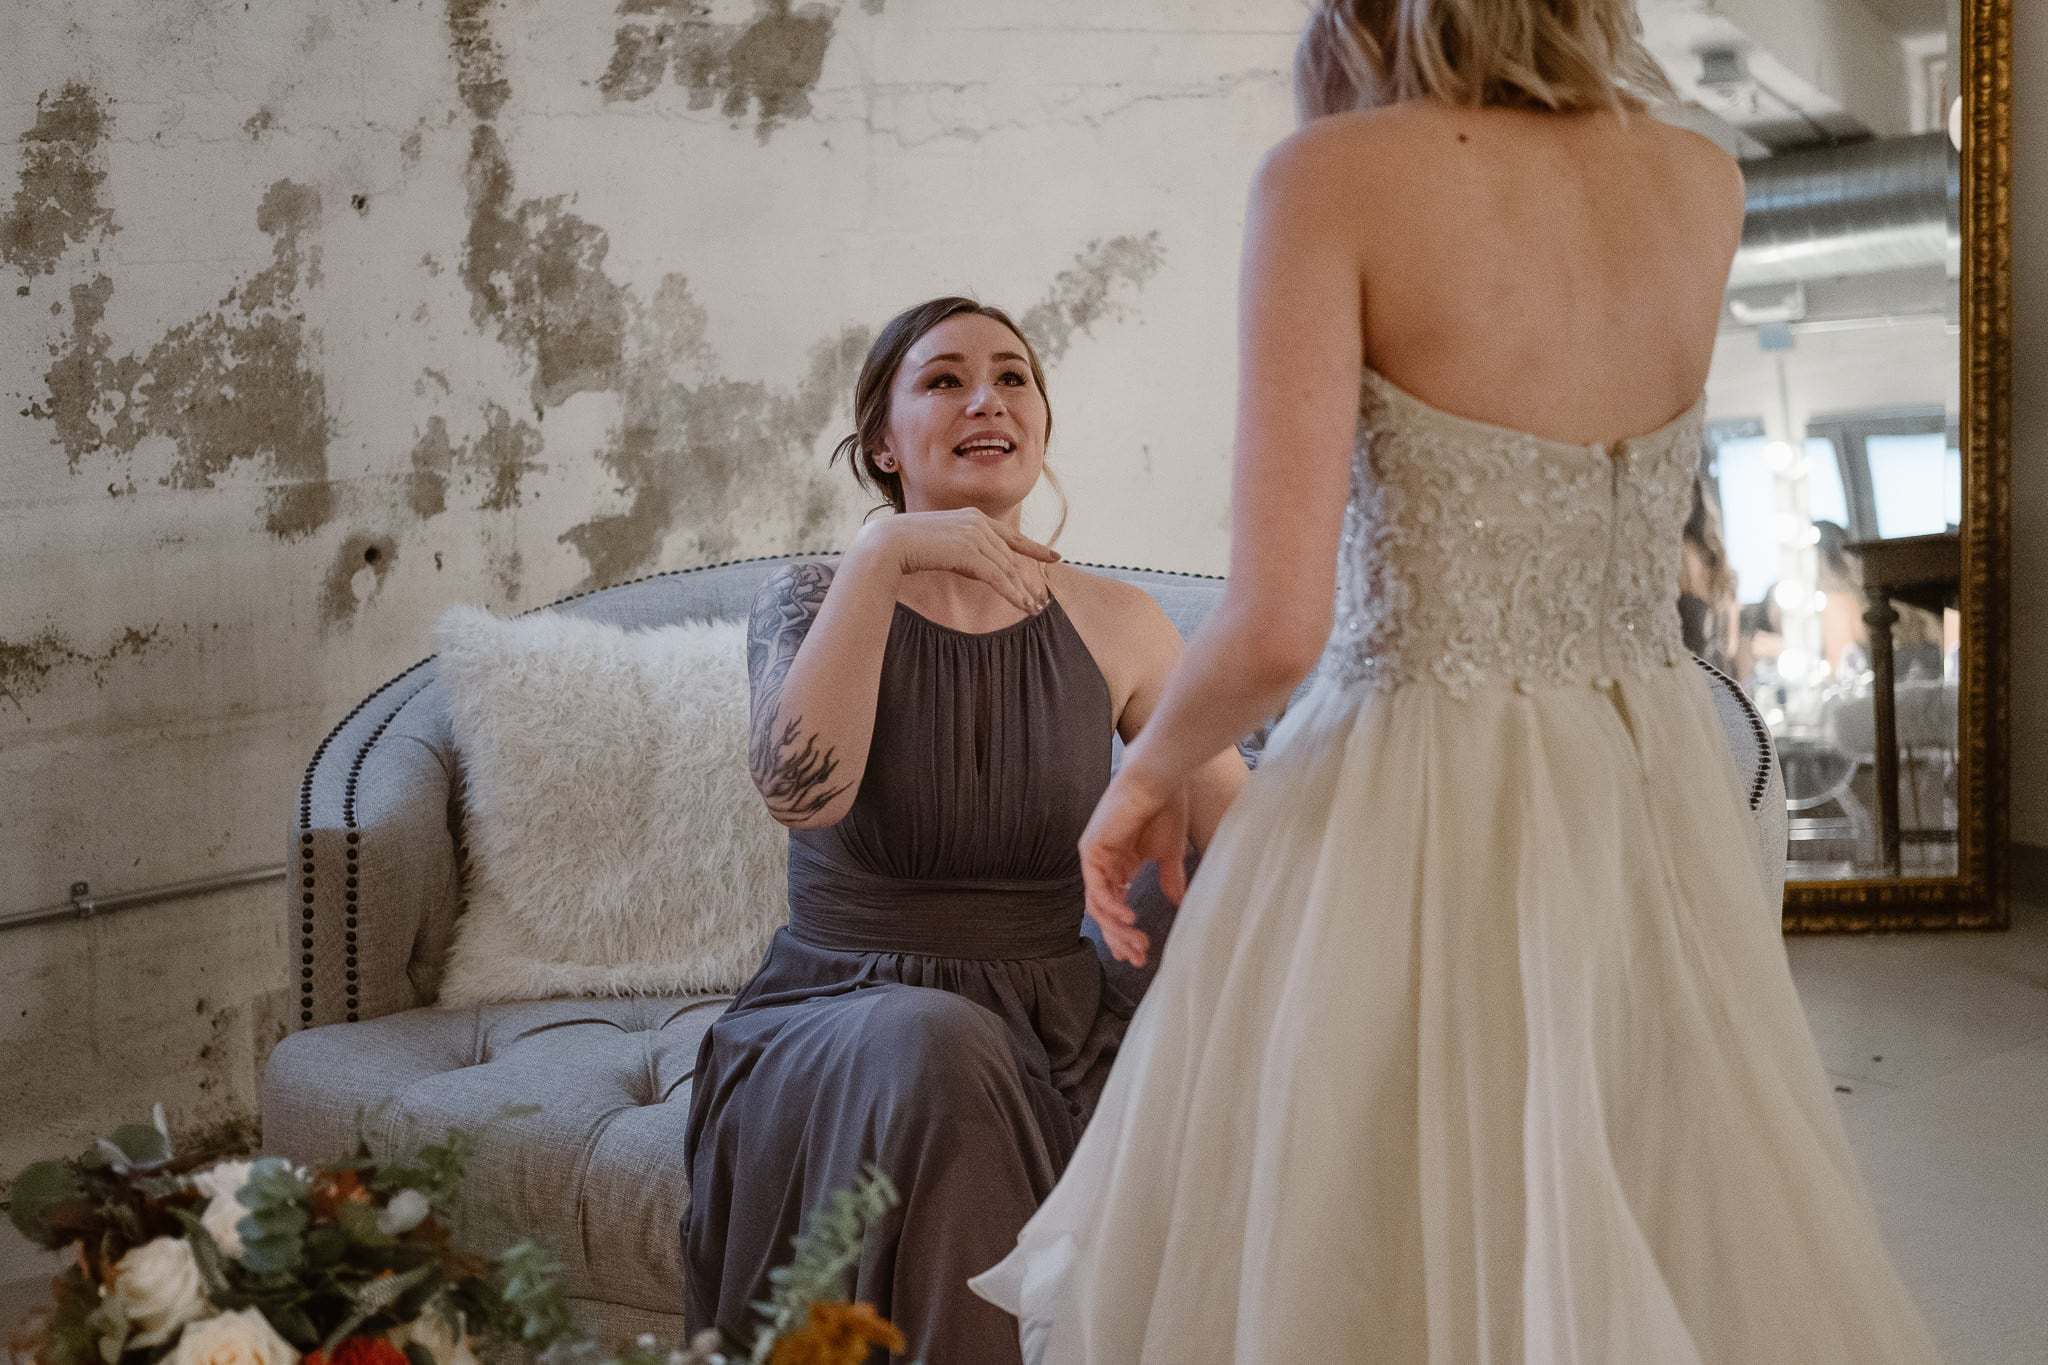 St Vrain Wedding Photographer | Longmont Wedding Photographer | Colorado Winter Wedding Photographer, Colorado industrial chic wedding, bride and bridesmaid crying